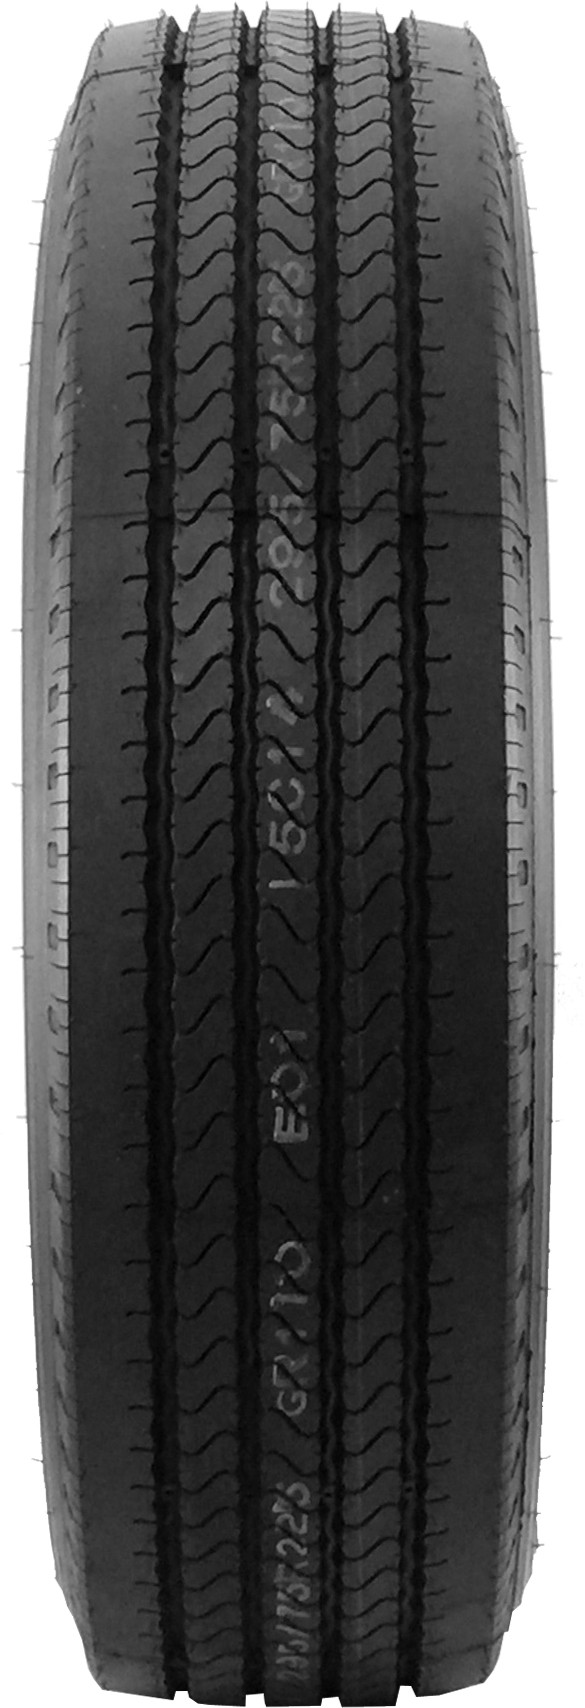 275/70R22.5-16 GR110 All-Position Steering/Trailer